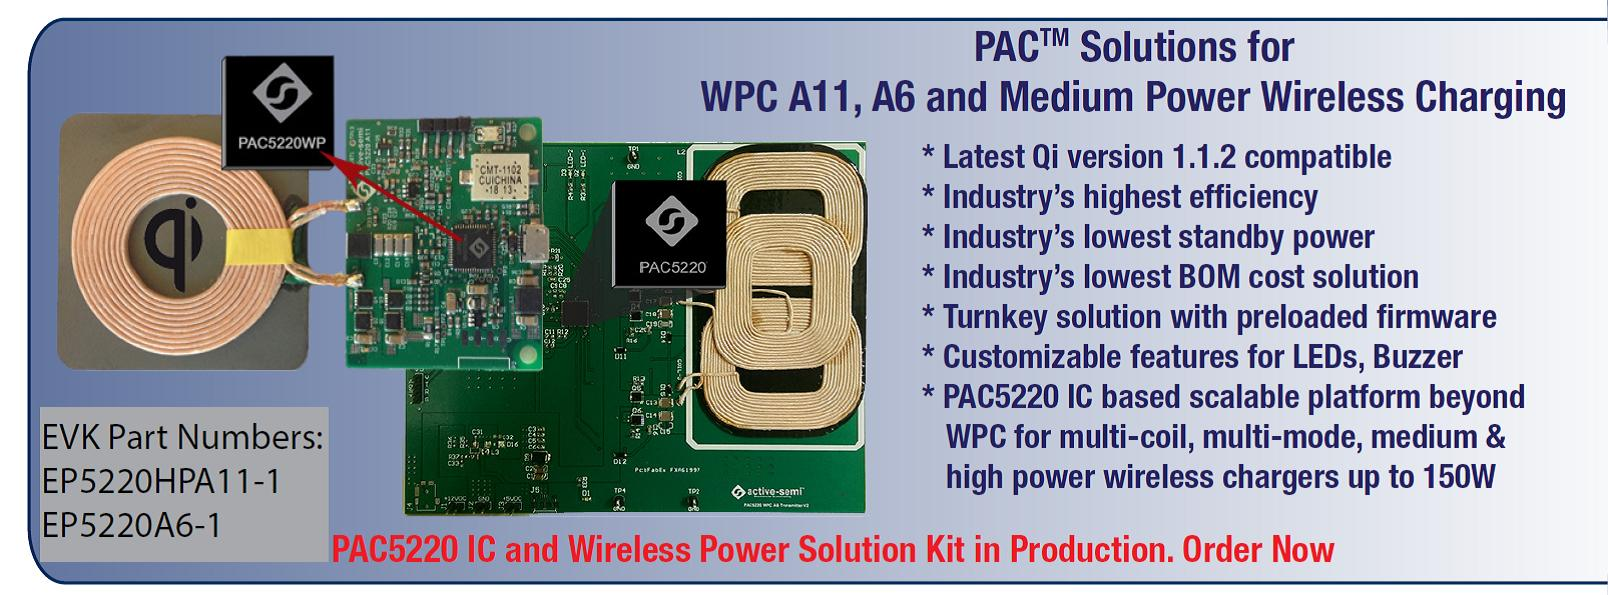 PAC Solutions for WPC A11, A6 and Medium Power Wireless Charging